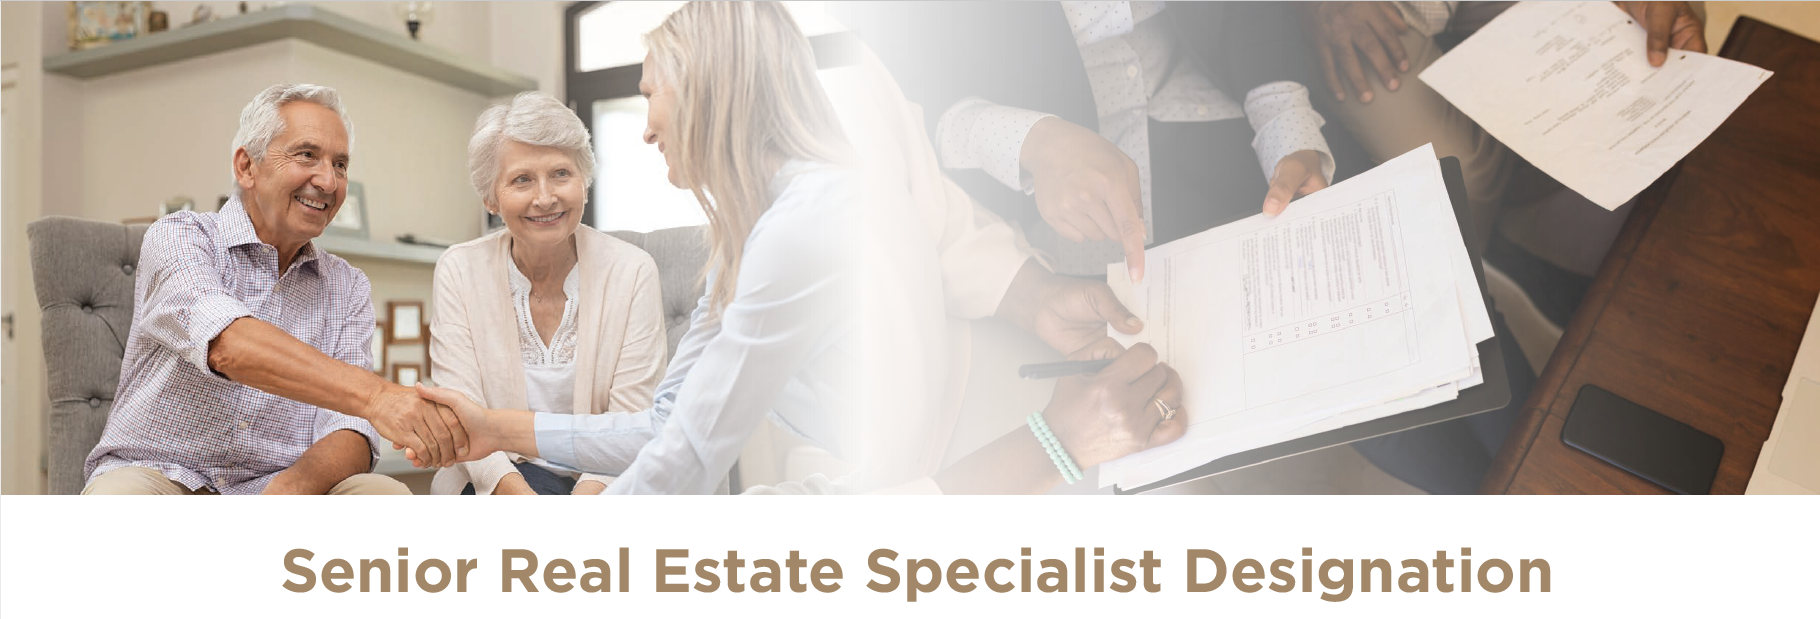 SRES Designation (Seniors Real Estate Specialist)